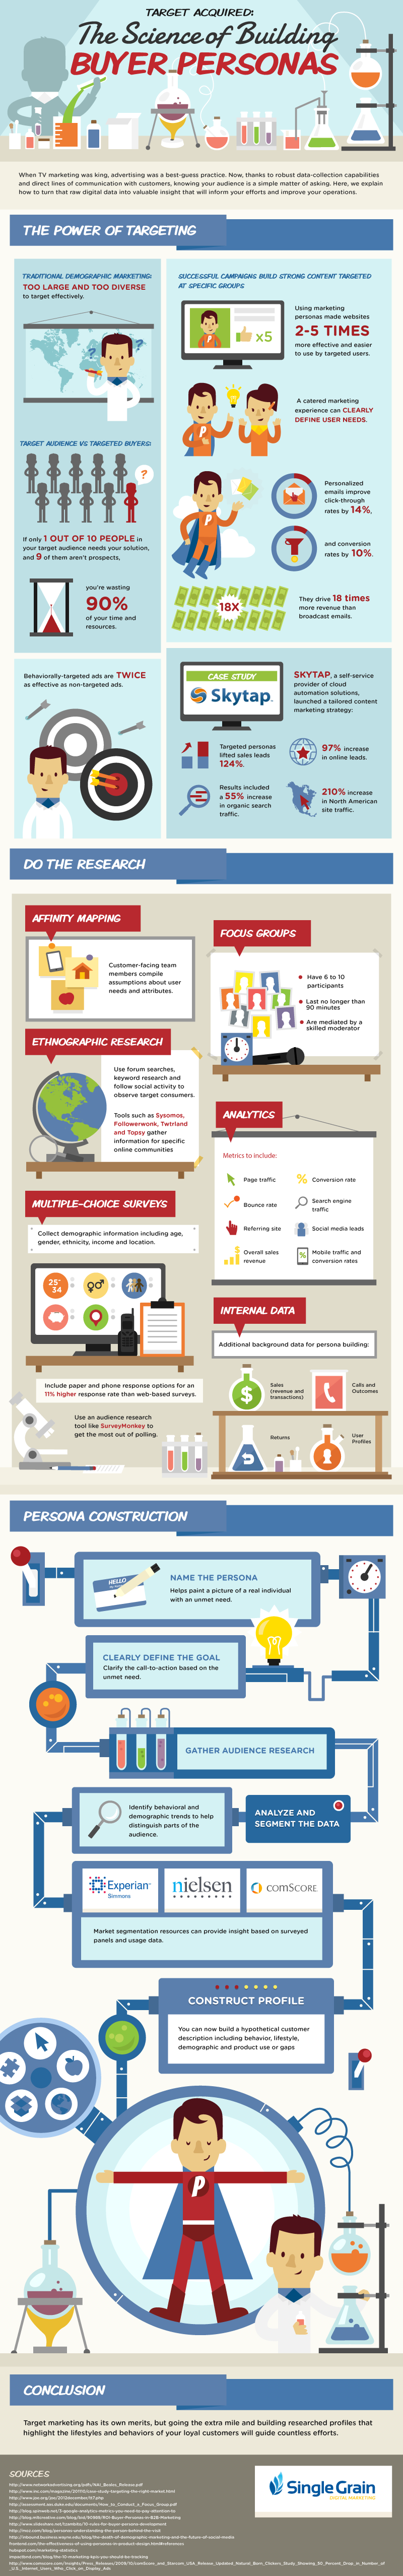 The Emerging Importance Of Personas infographic